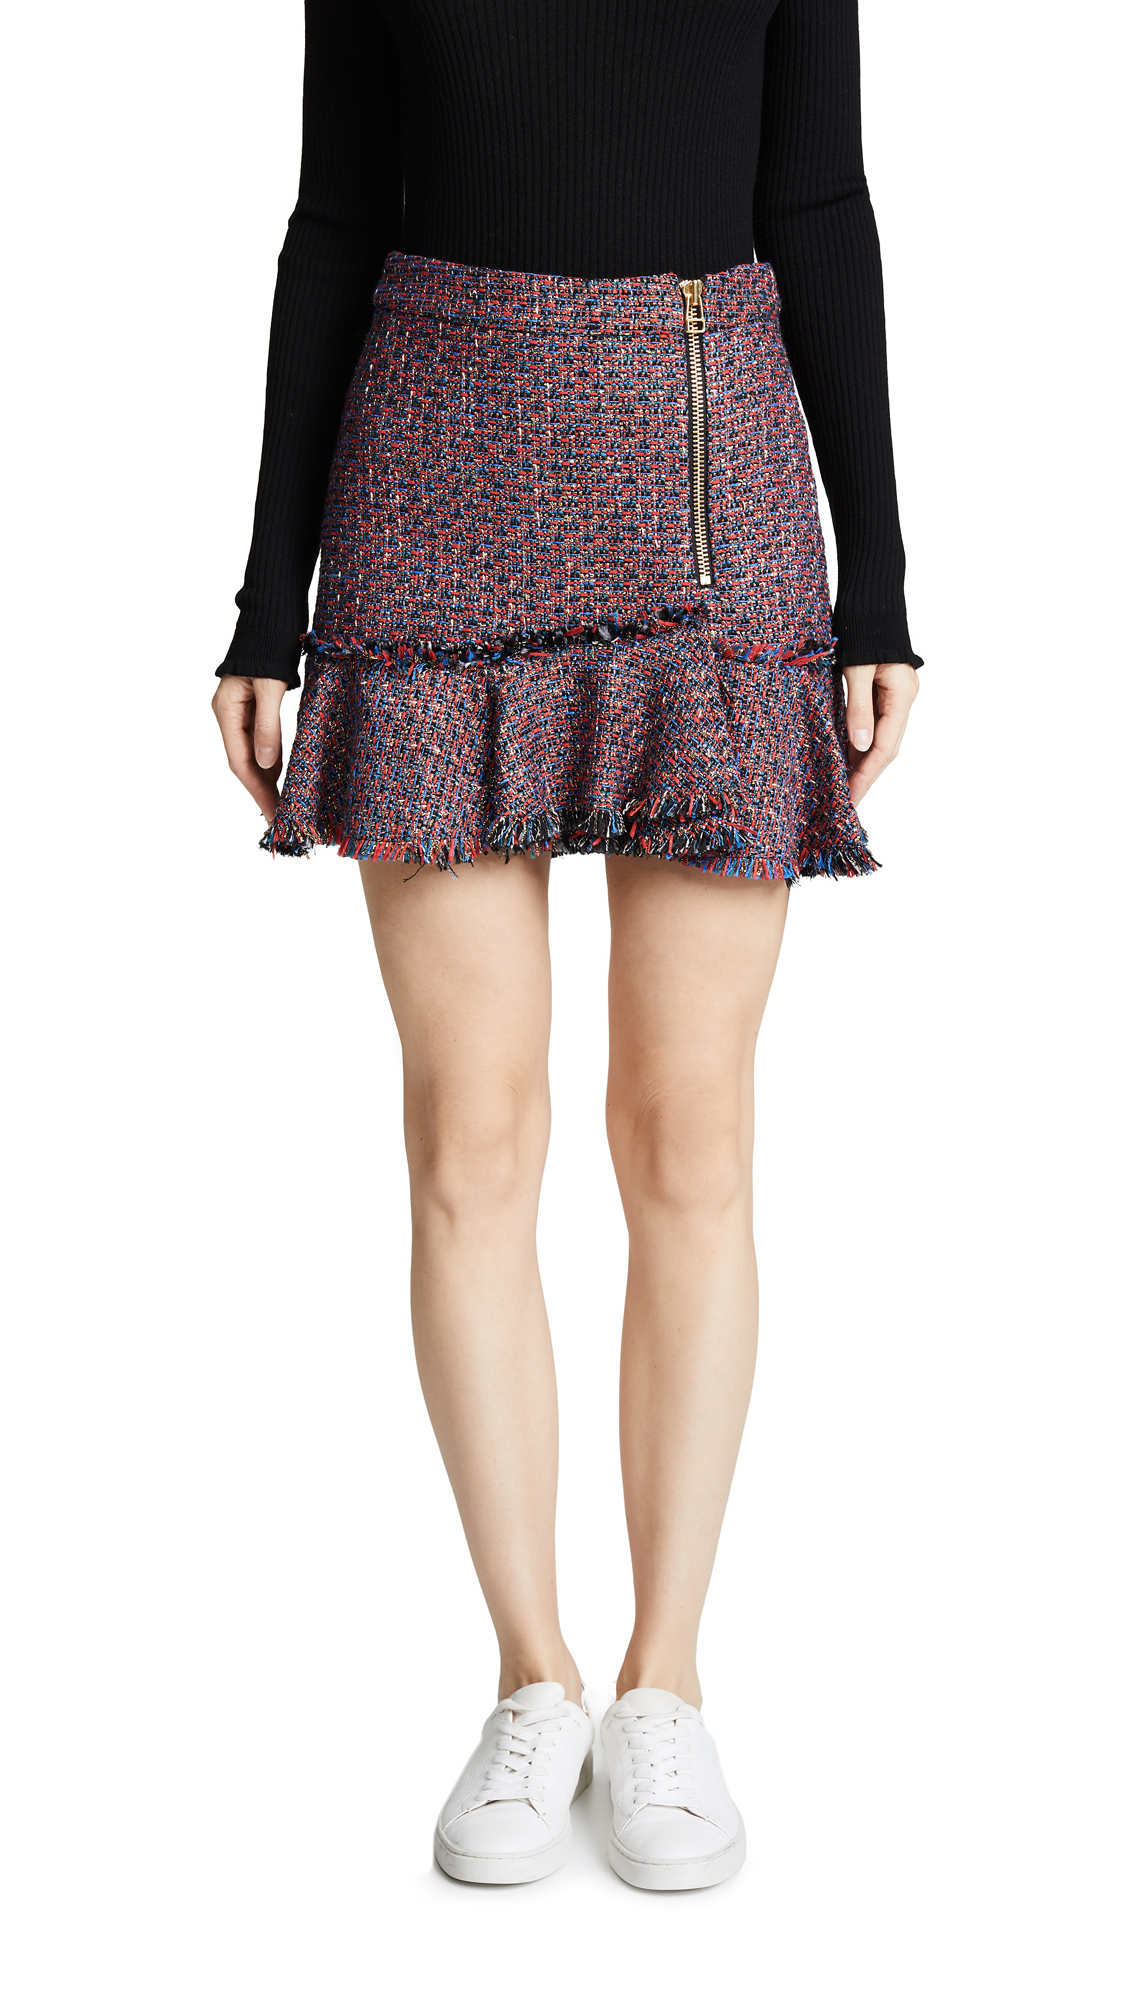 Madra Boucle Mini Skirt in Red Multi